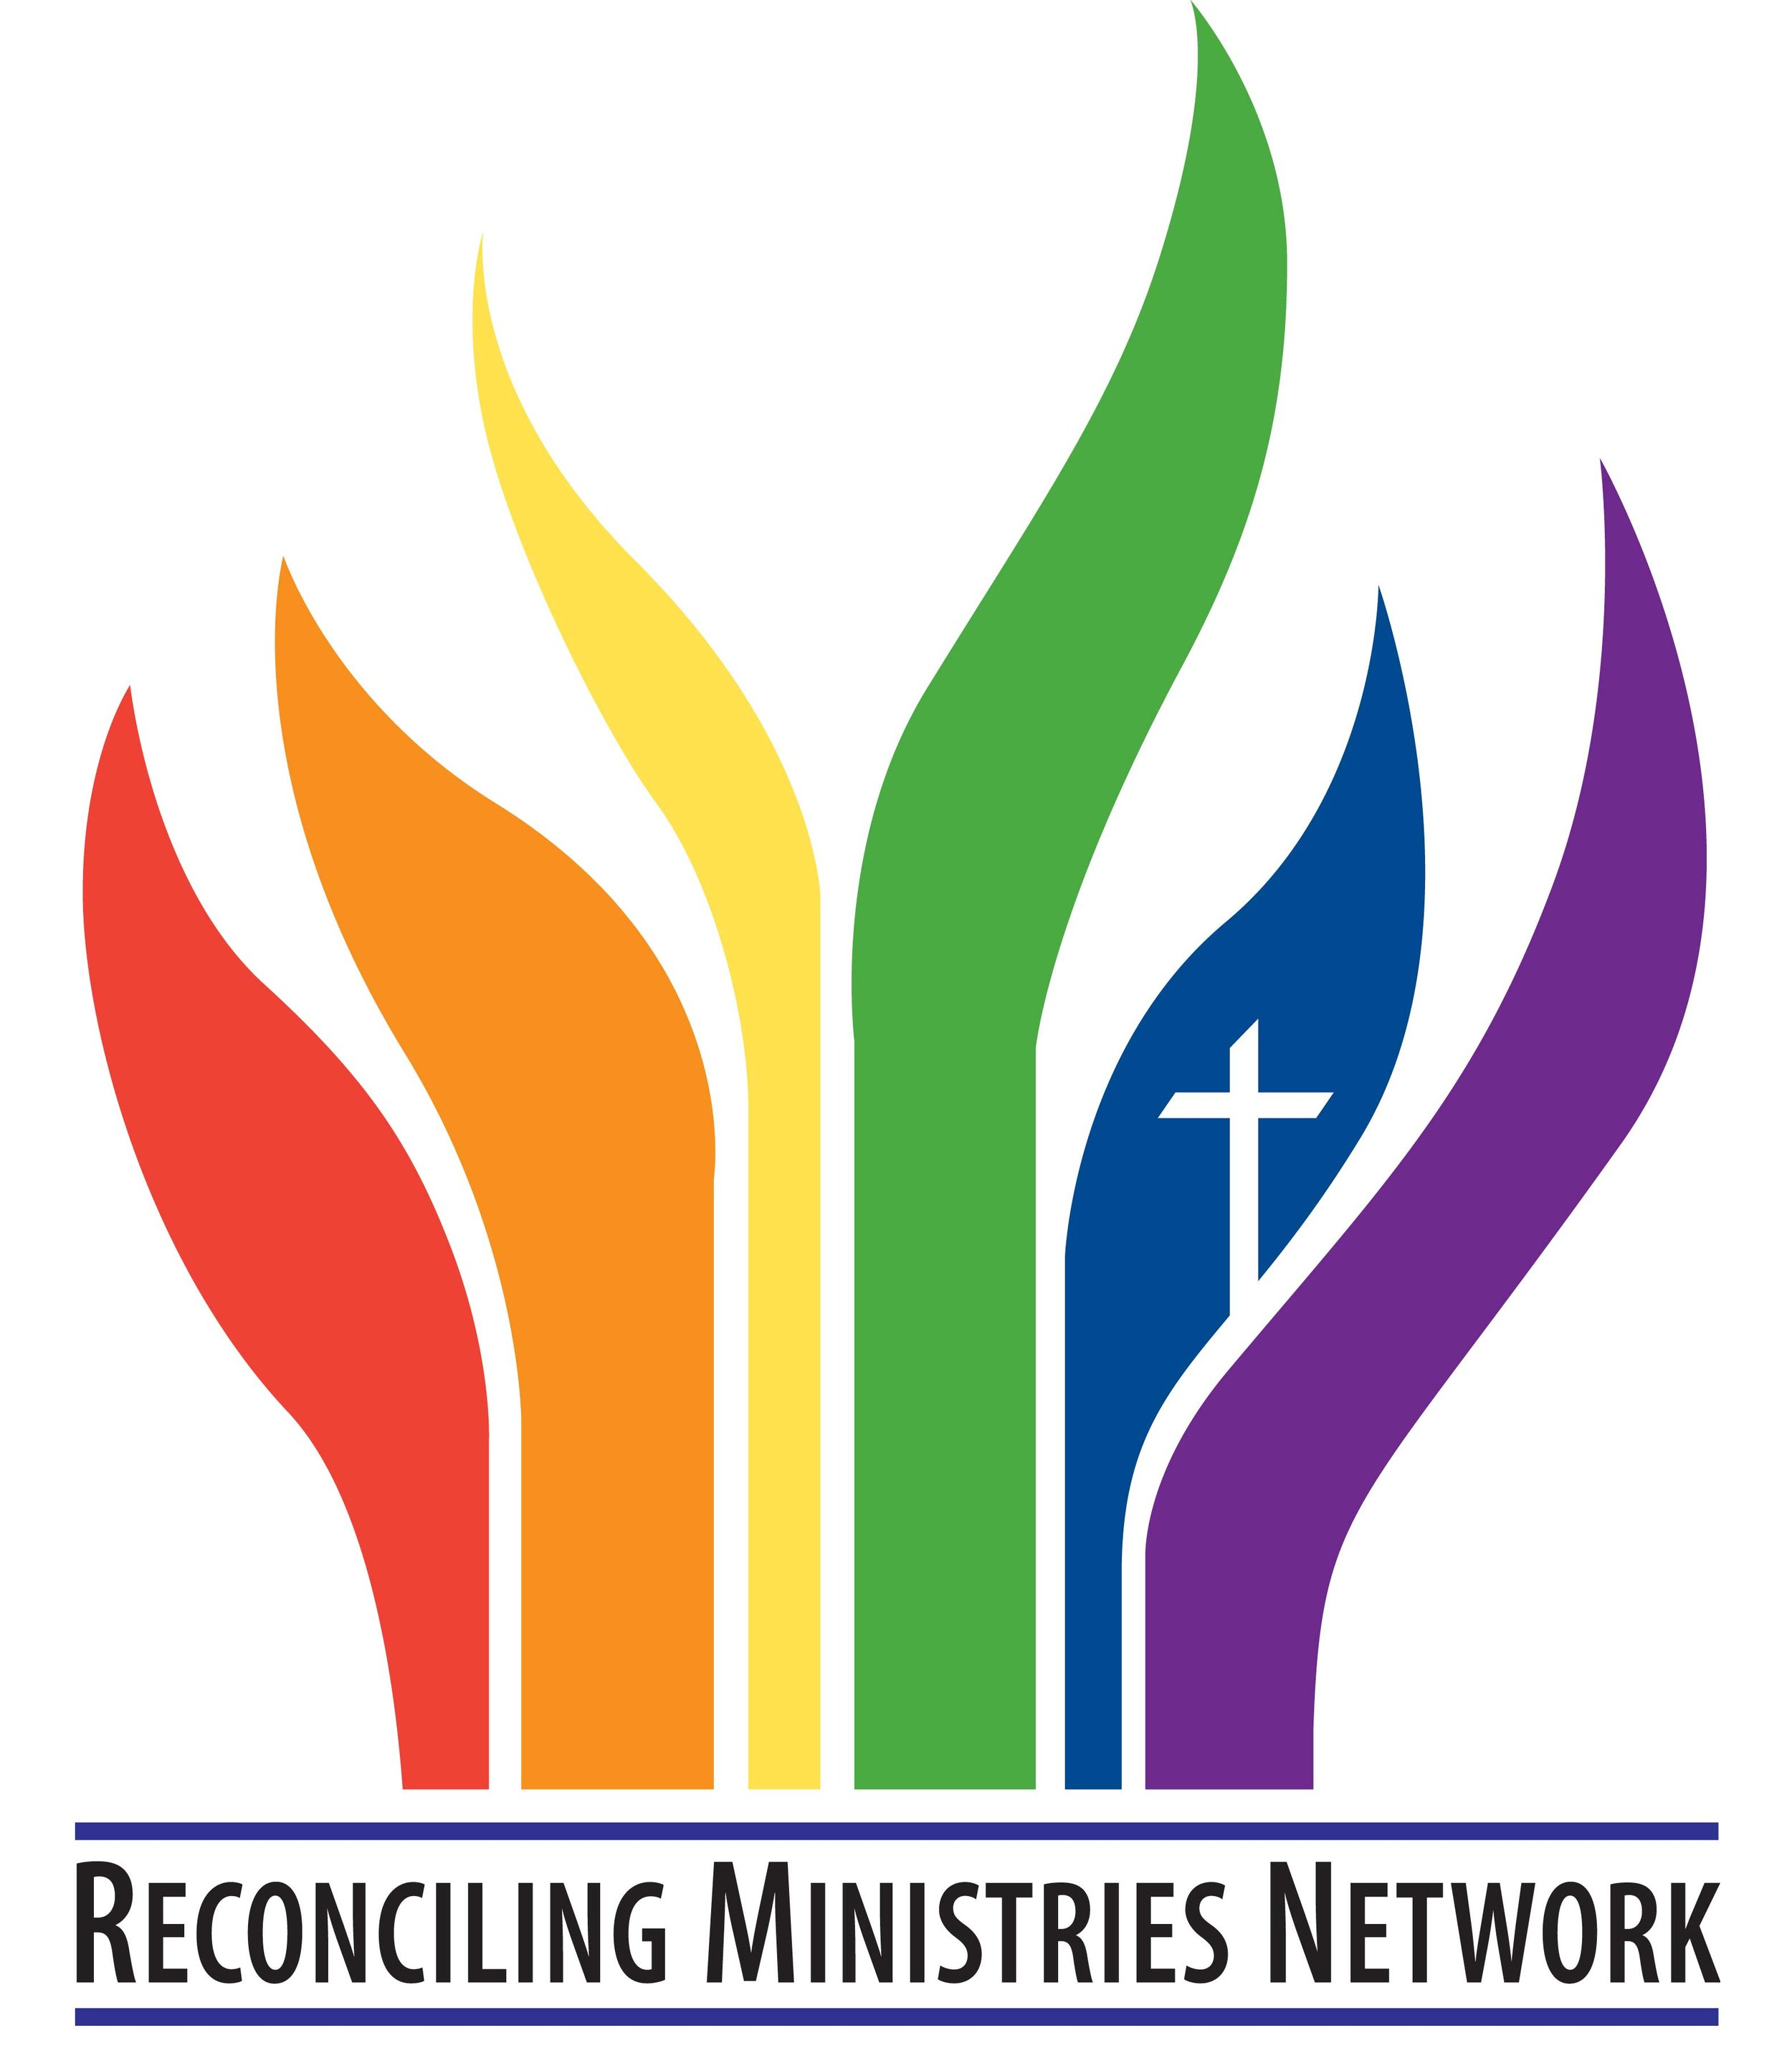 reconciling ministries network 2.jpg